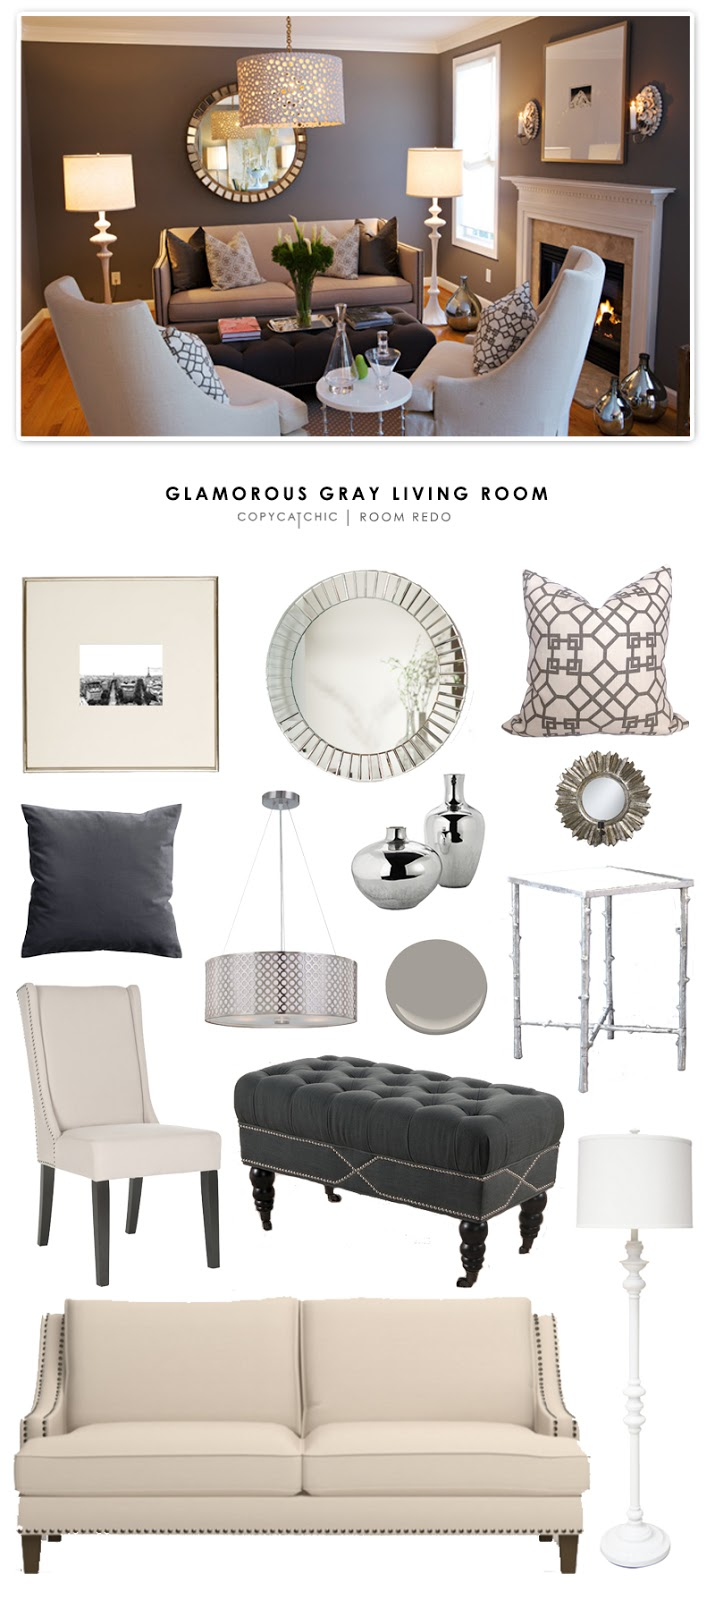 Copy Cat Chic Room Redo Glamorous Gray Living Room